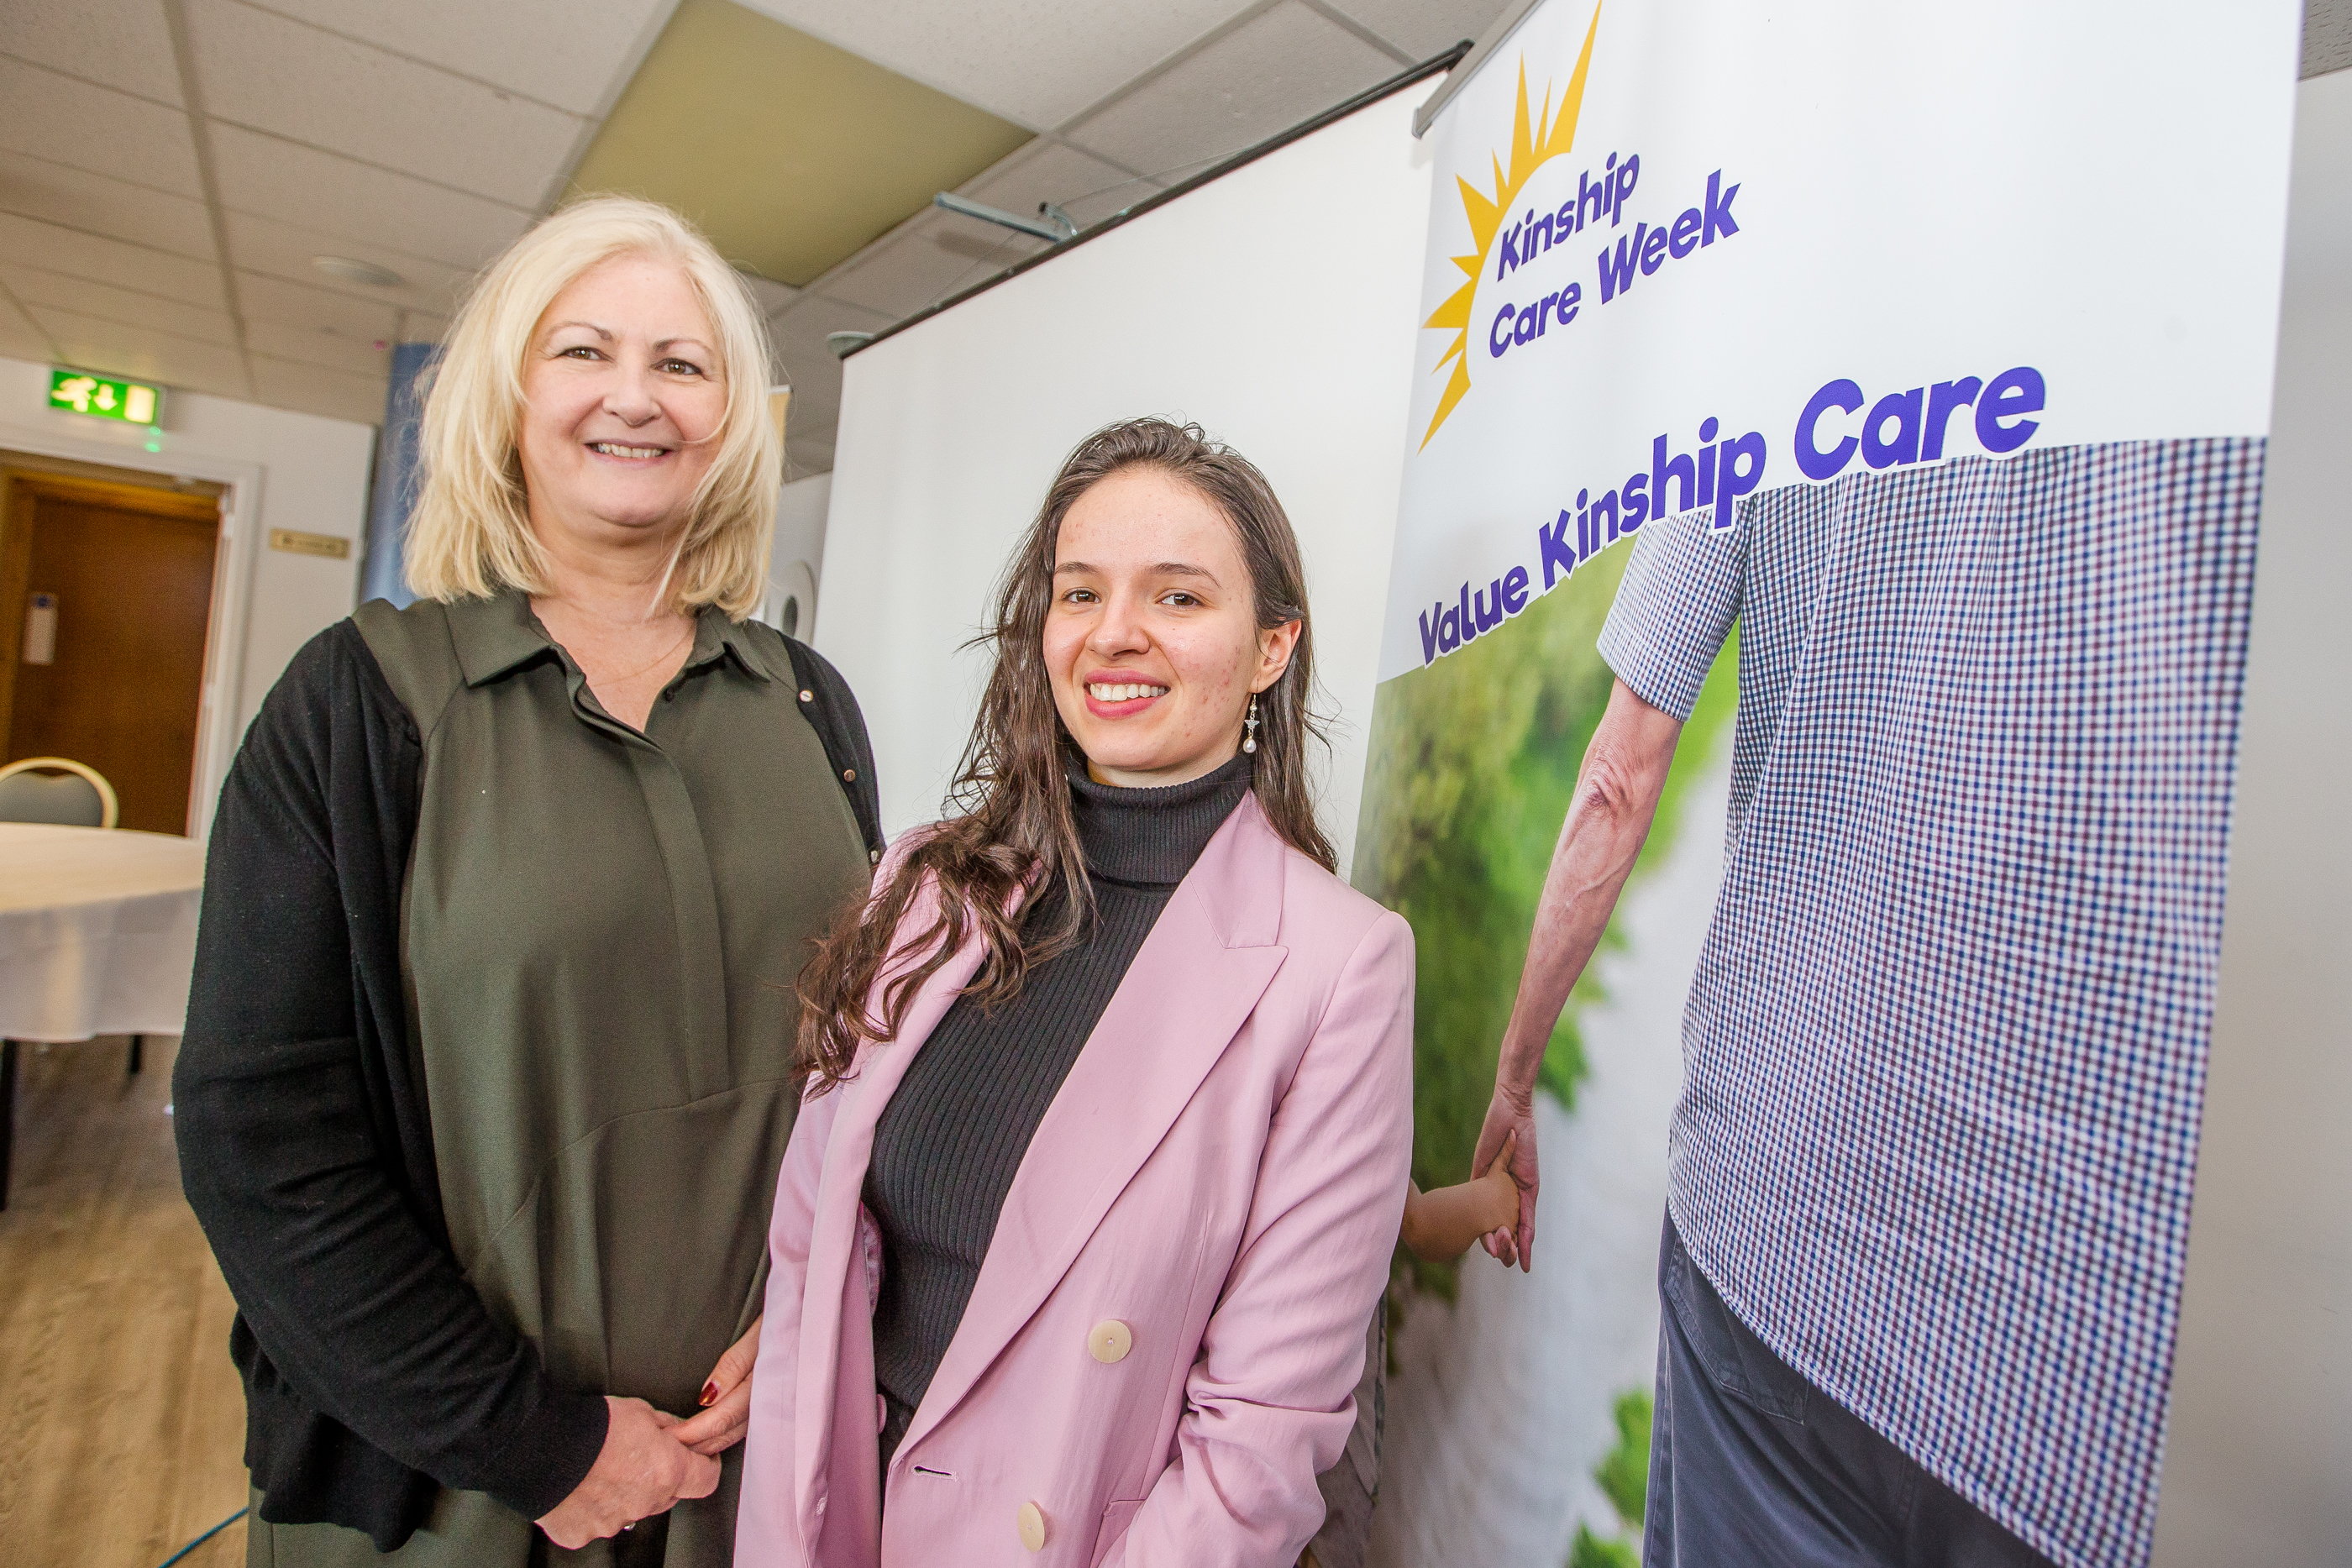 Susuan Hunter, project coordinator for Kinship Care Service Scotland and regional coordinator Georgiana Bugeag at the Kinship Care event yesterday at the Caledonian Stadium